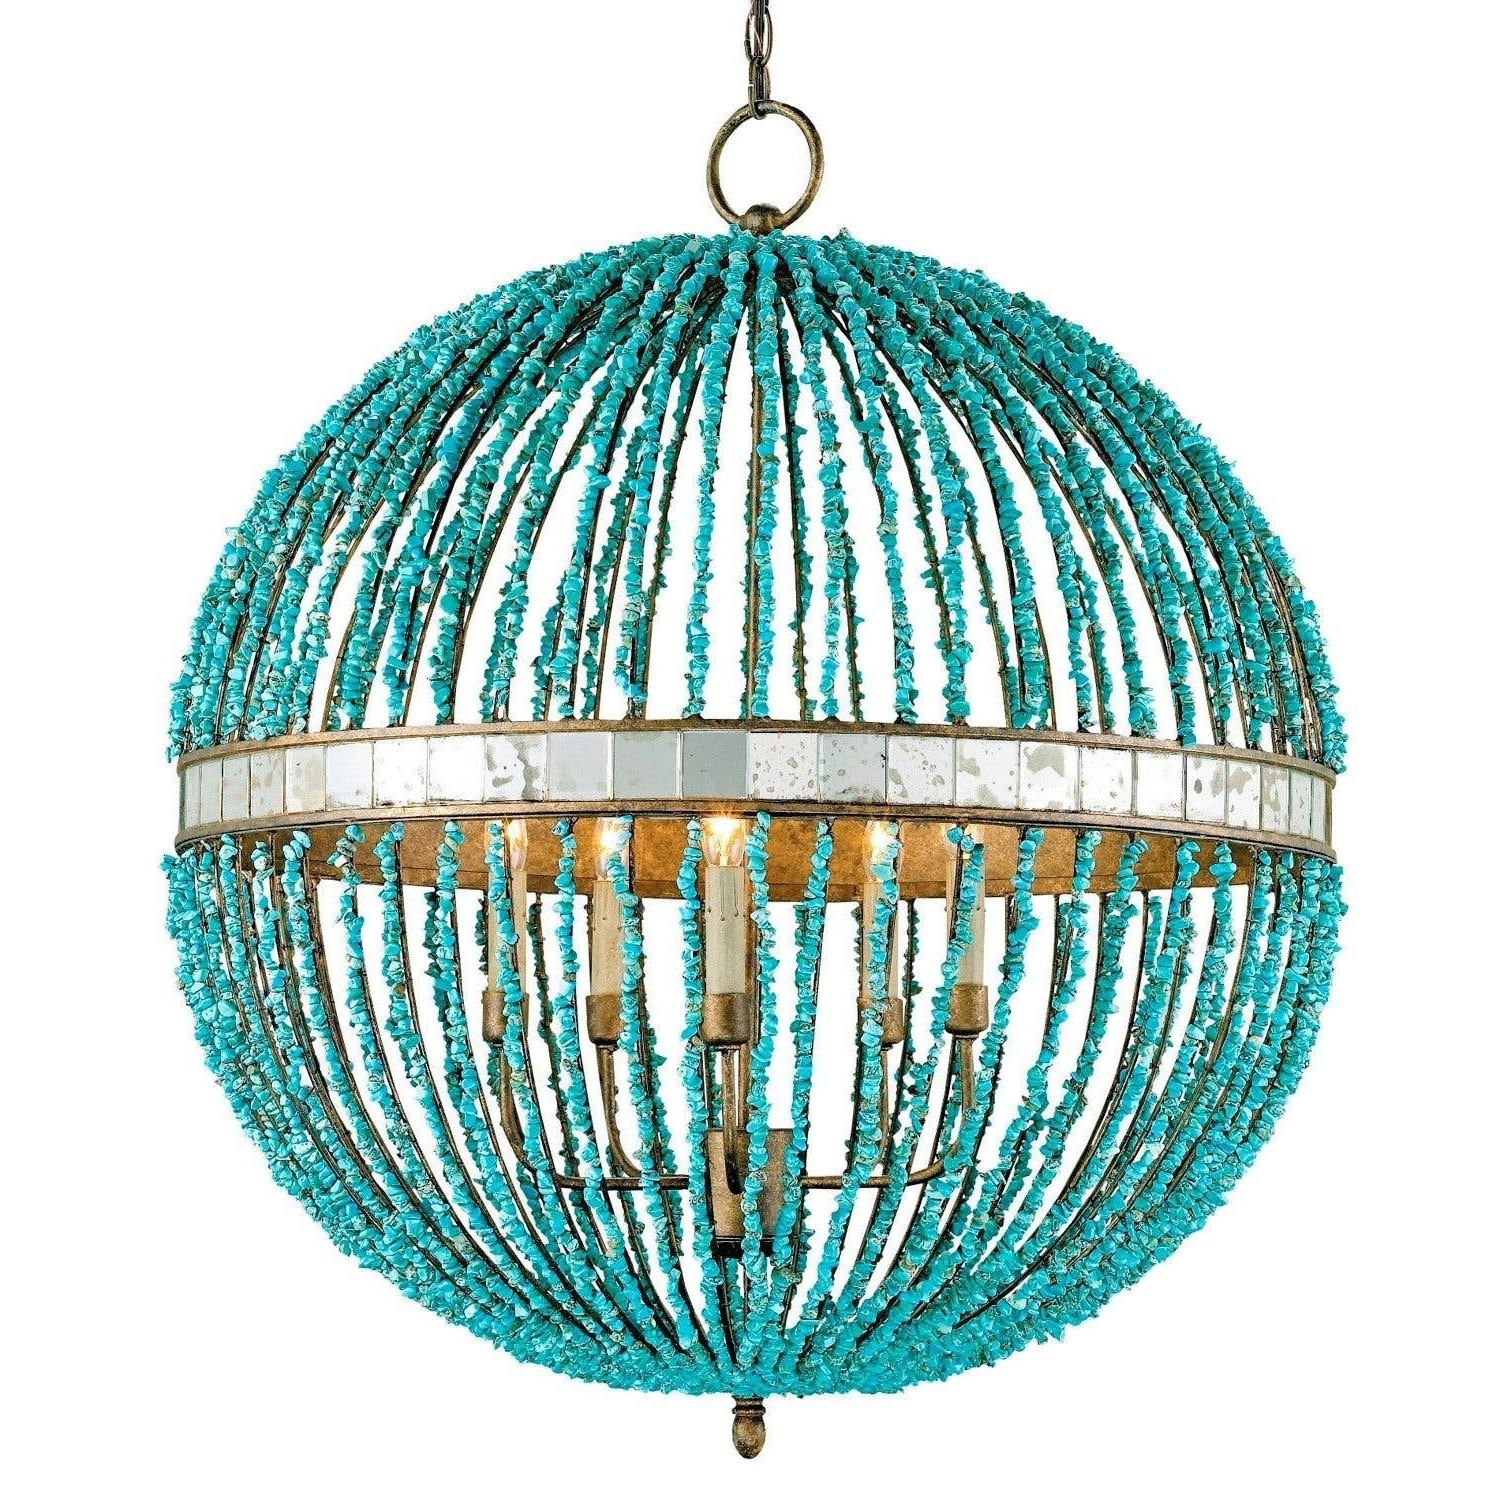 Turquoise Chandelier Luxury Turquoise Beaded Chandeliers High Diy Regarding Most Recently Released Diy Turquoise Beaded Chandeliers (View 14 of 15)